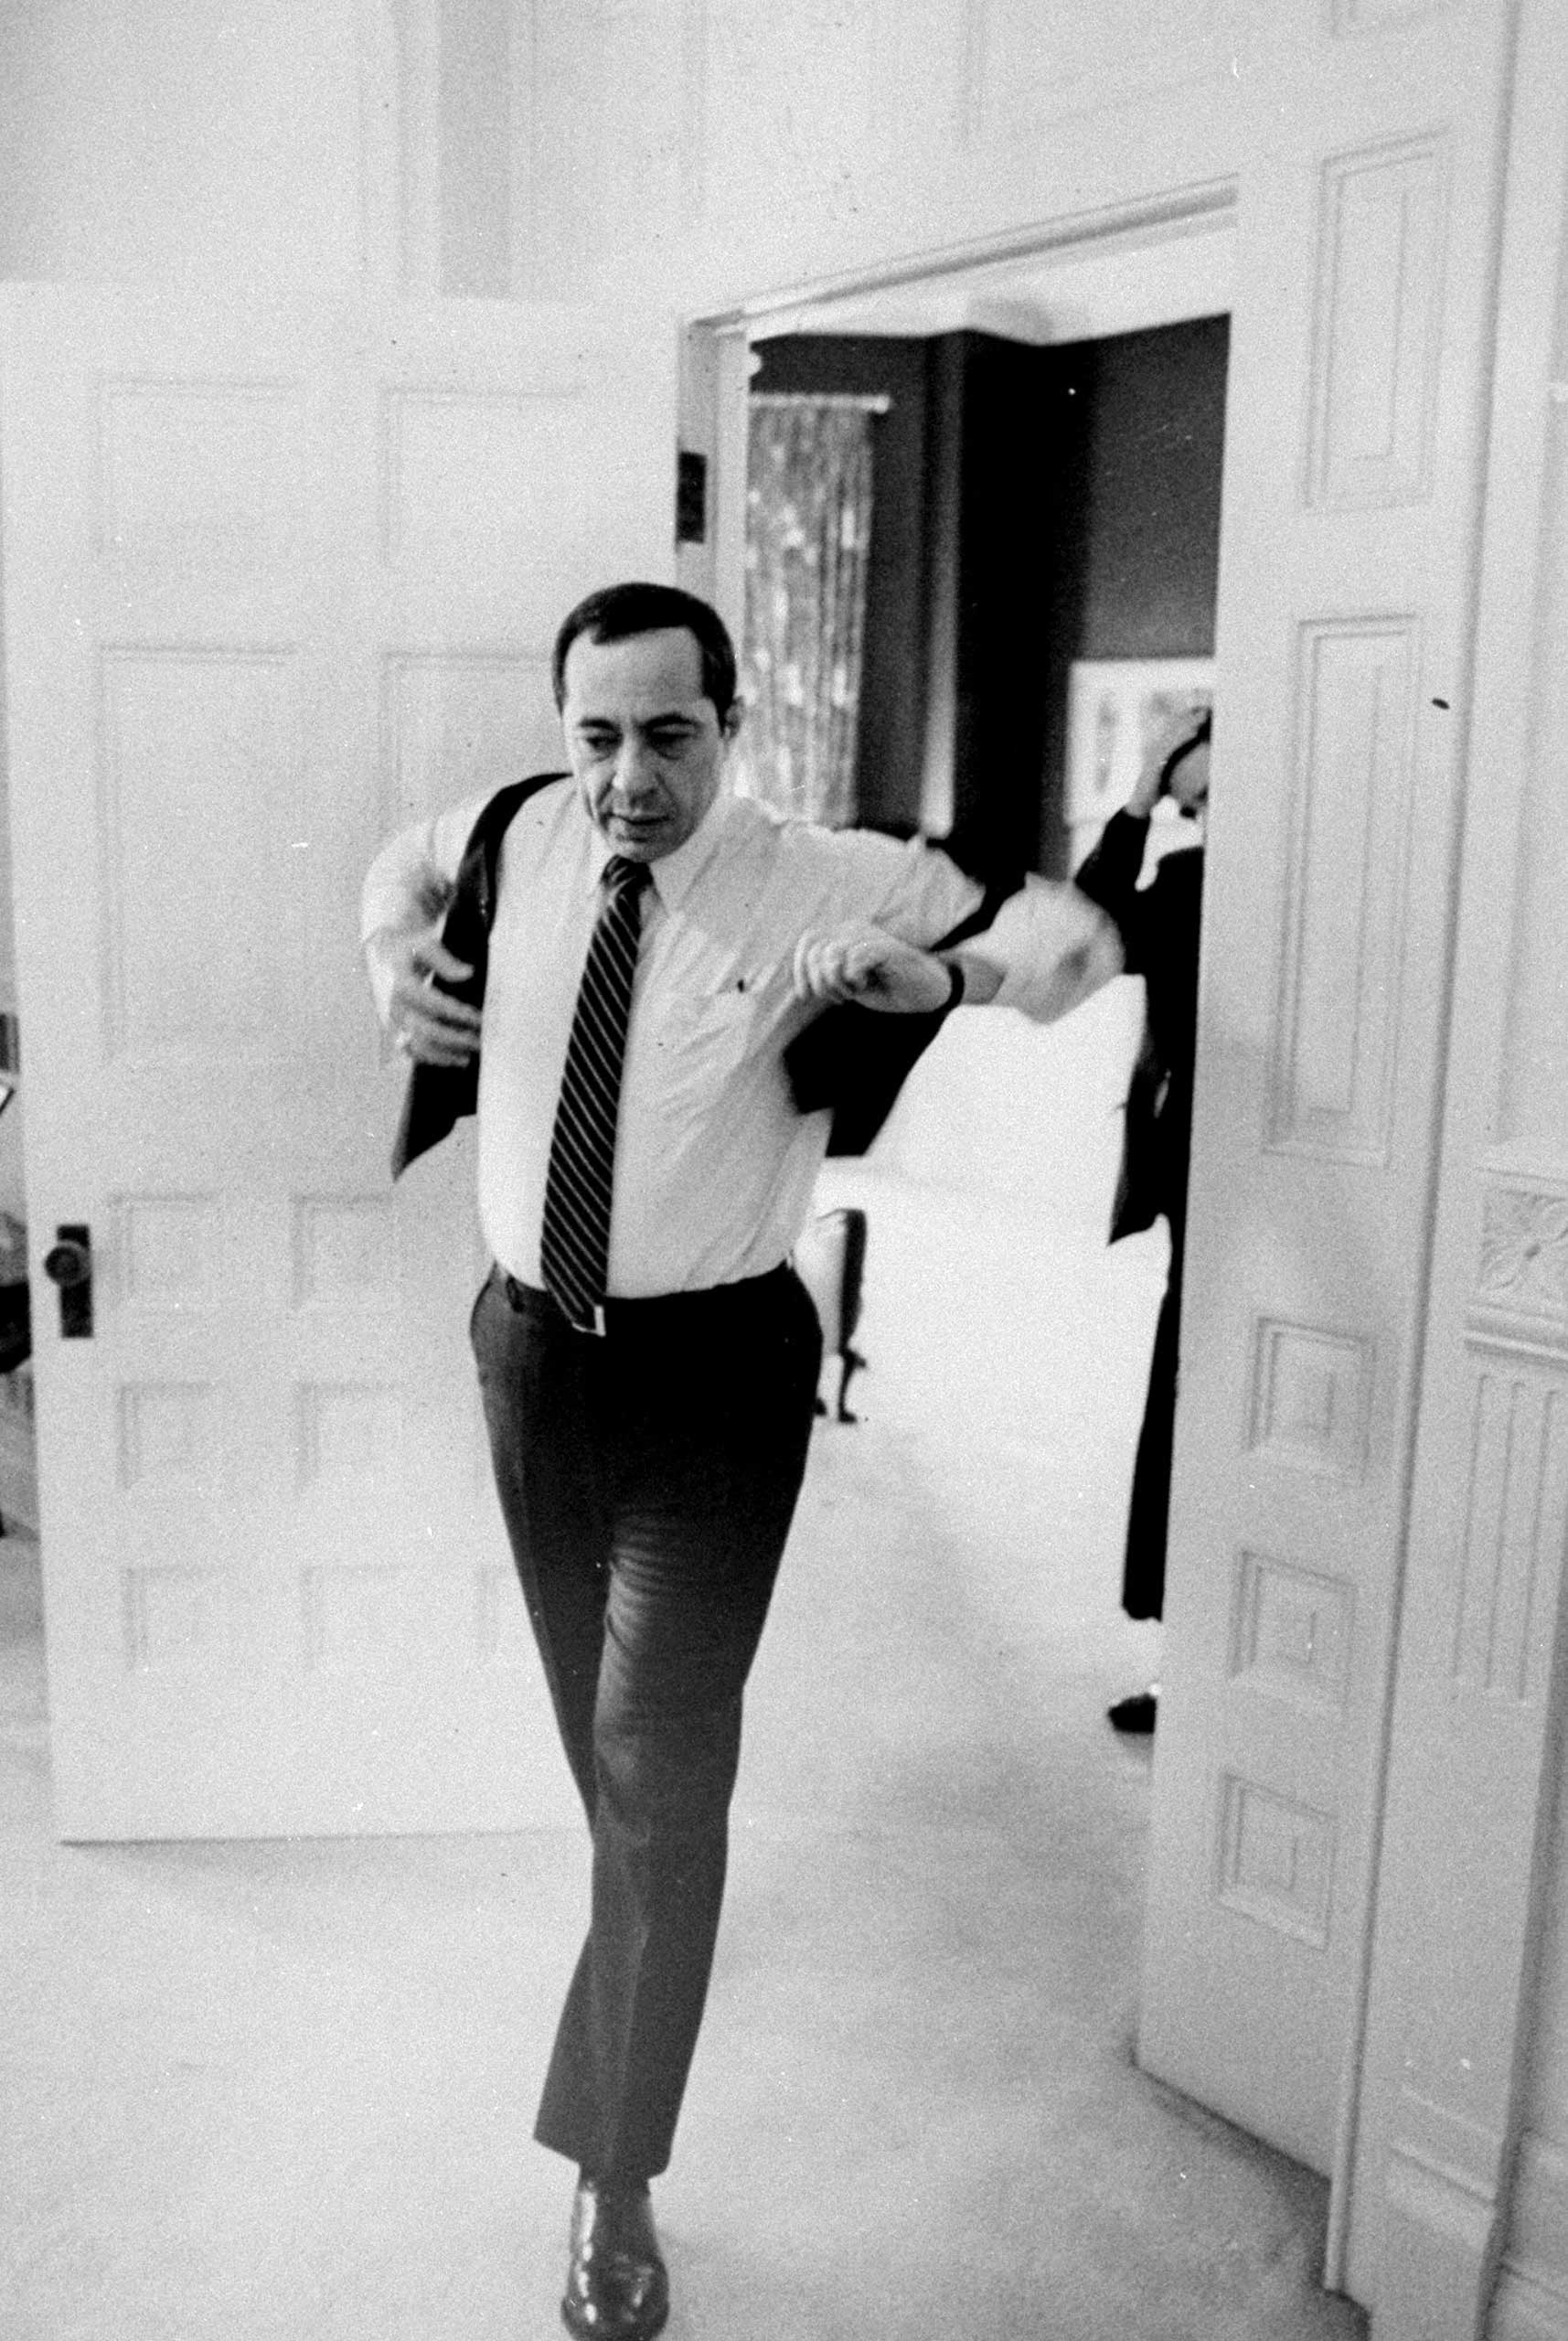 Gov. Mario Cuomo puts on a vest as he leaves his office at the Capitol in Albany, N.Y. on Jan. 20, 1983.